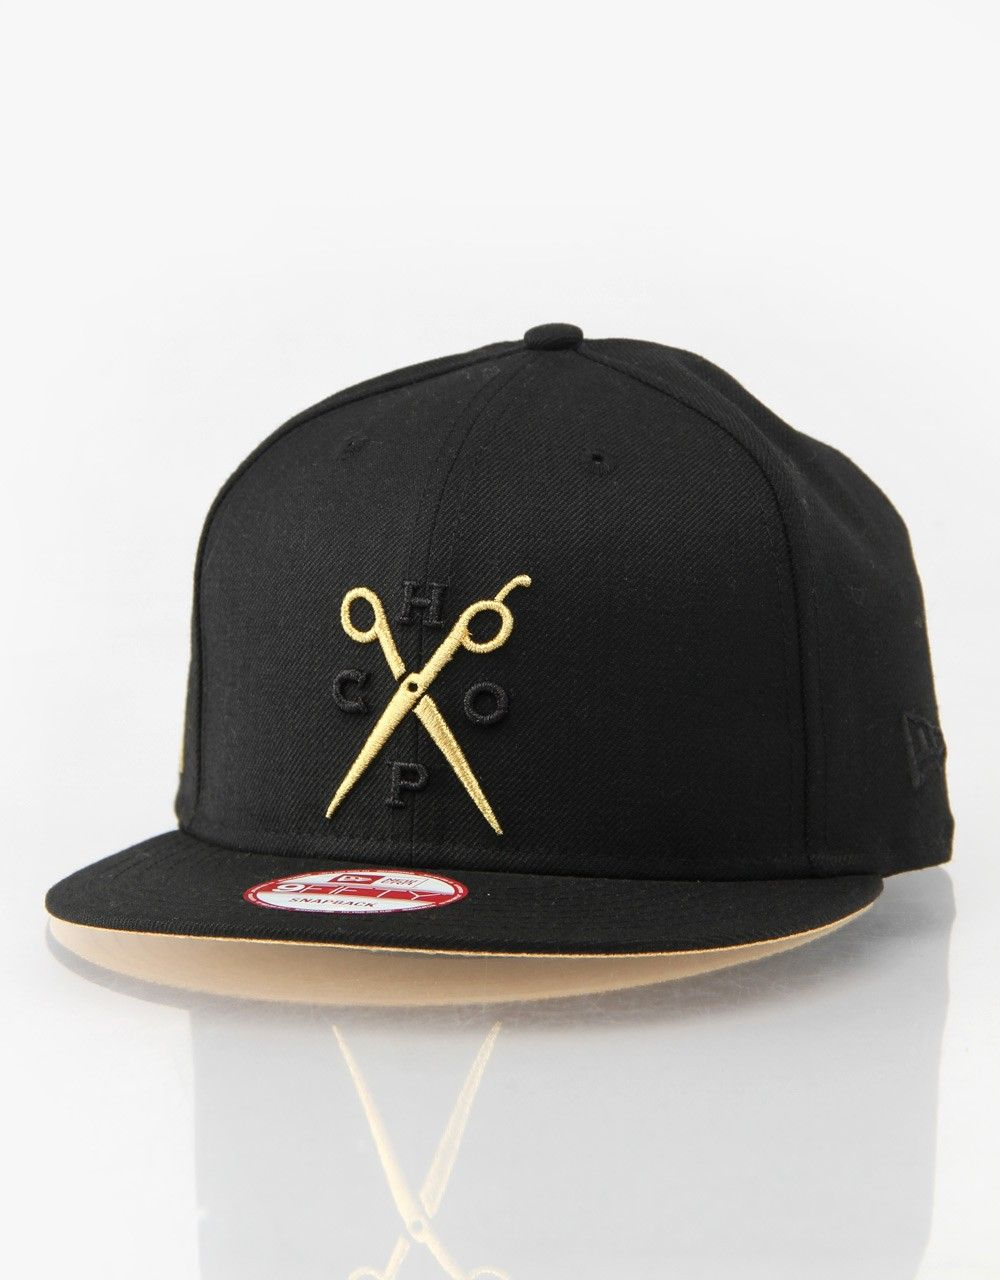 Franks Chop Shop Gold Scissors New Era Snapback Cap  de33cc868fd